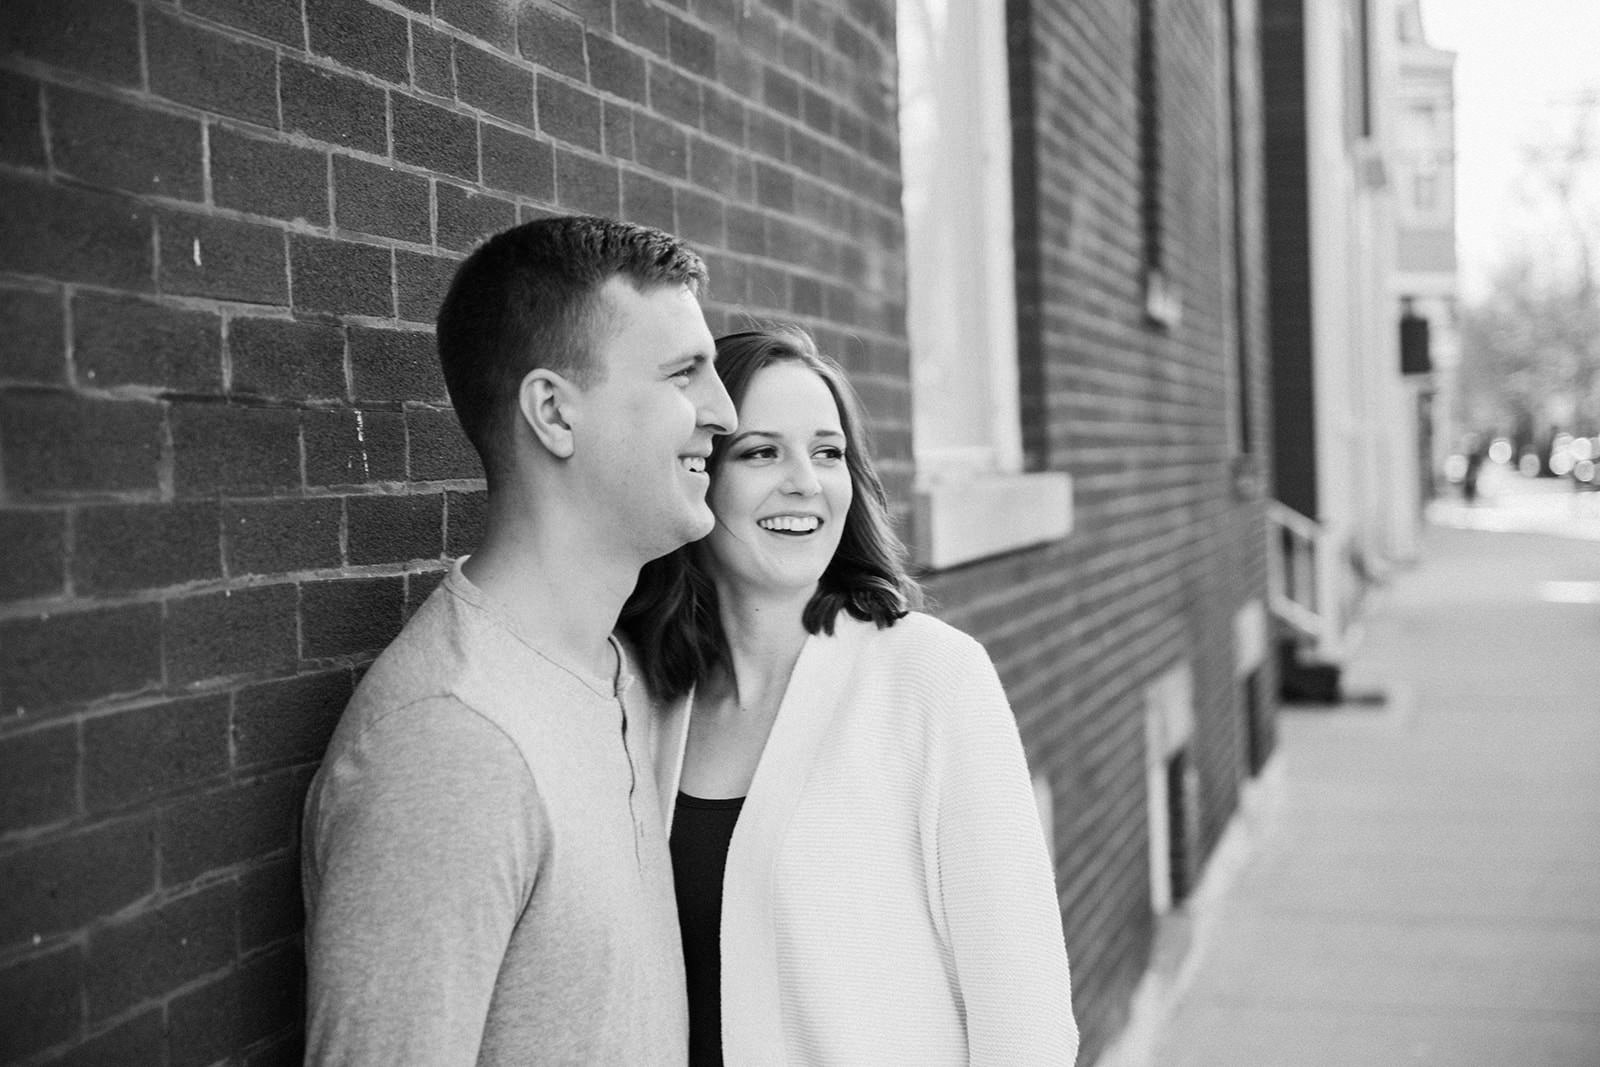 Downtown_chicago_spring_engagement_session-9.jpg